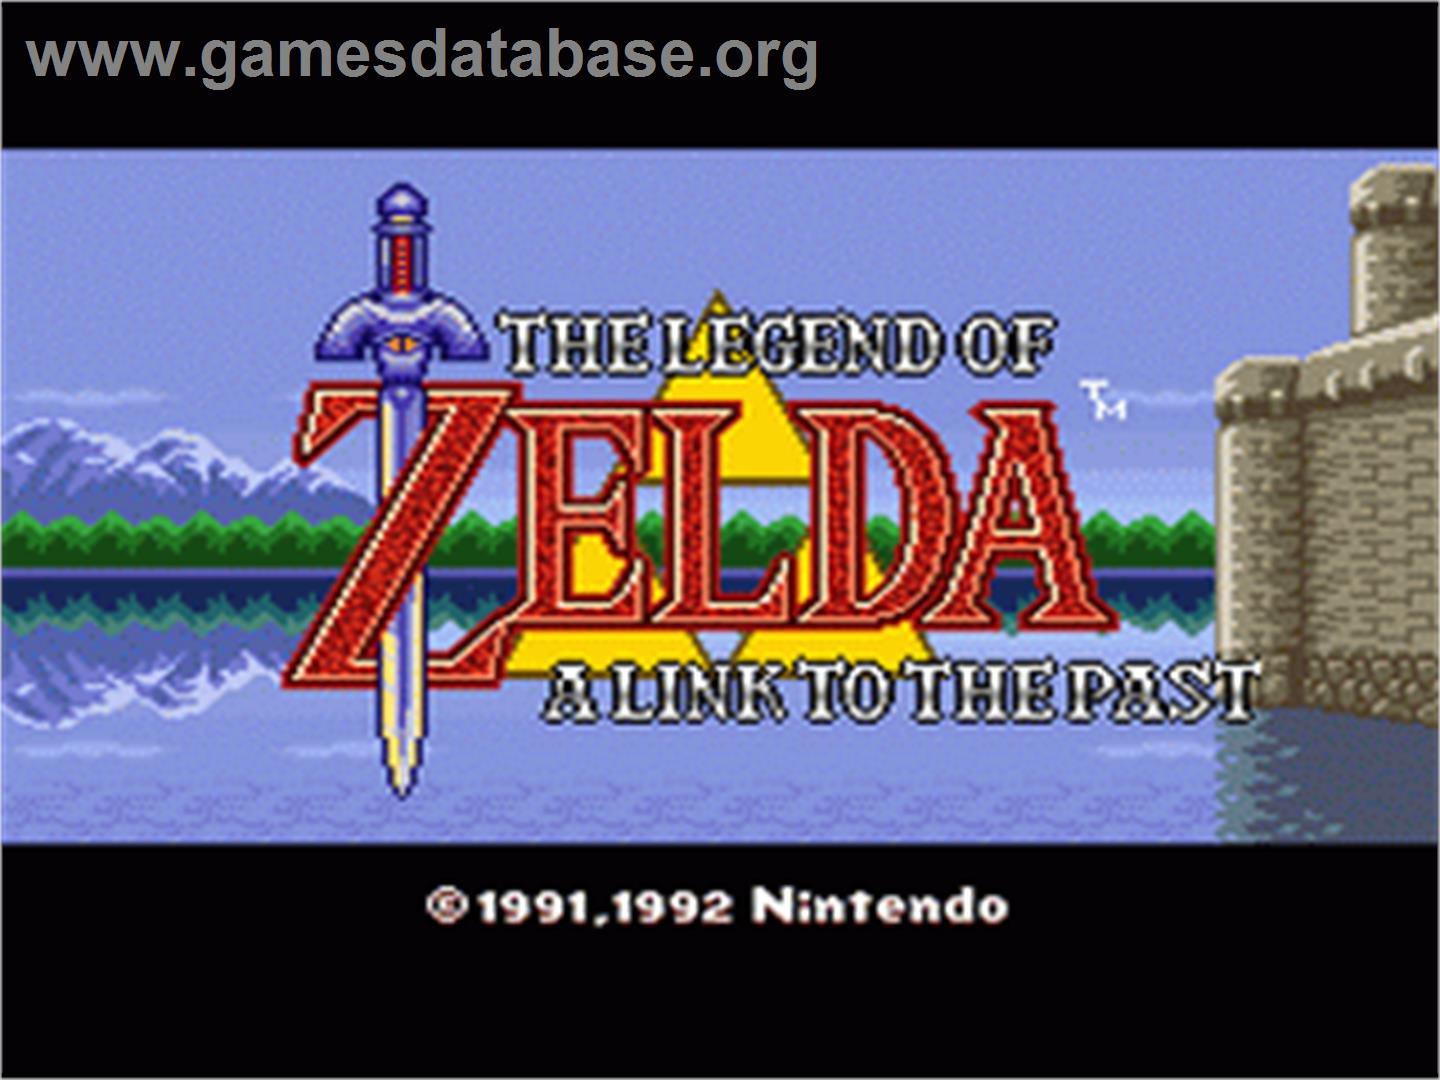 The Legend of Zelda: A Link to the Past - Nintendo SNES - Artwork - Title Screen